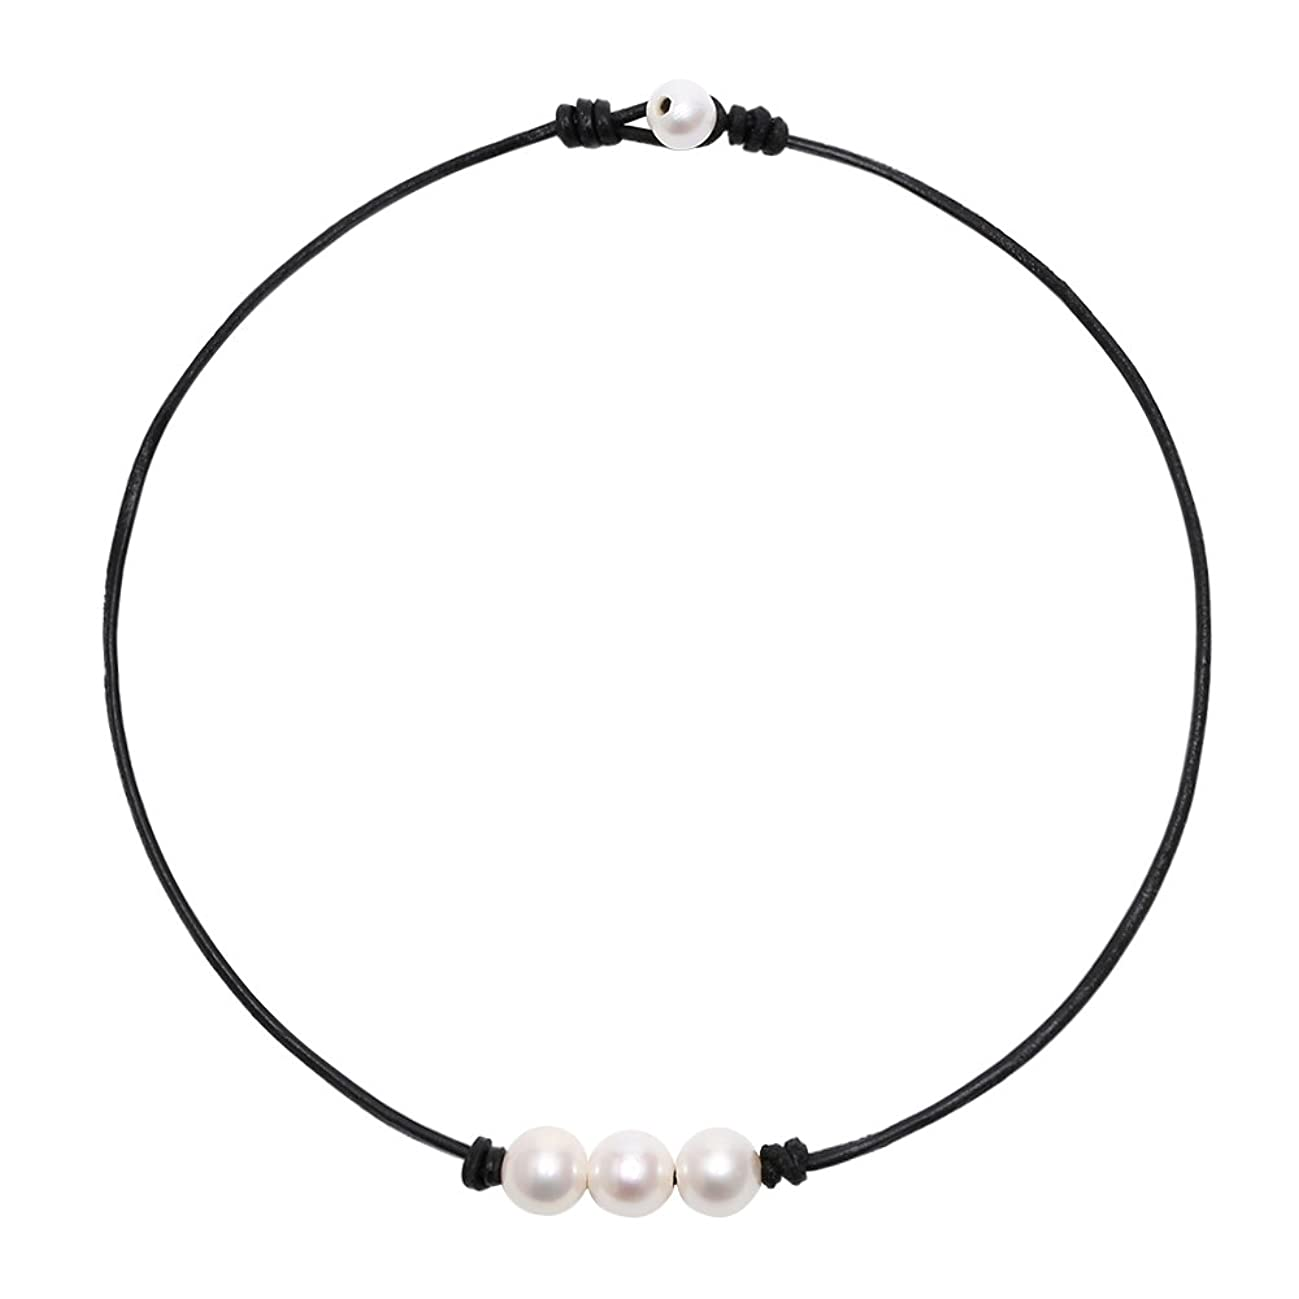 POTESSA White Pearl Choker Necklace with Three Beads on Genuine Leather Jewelry for Women